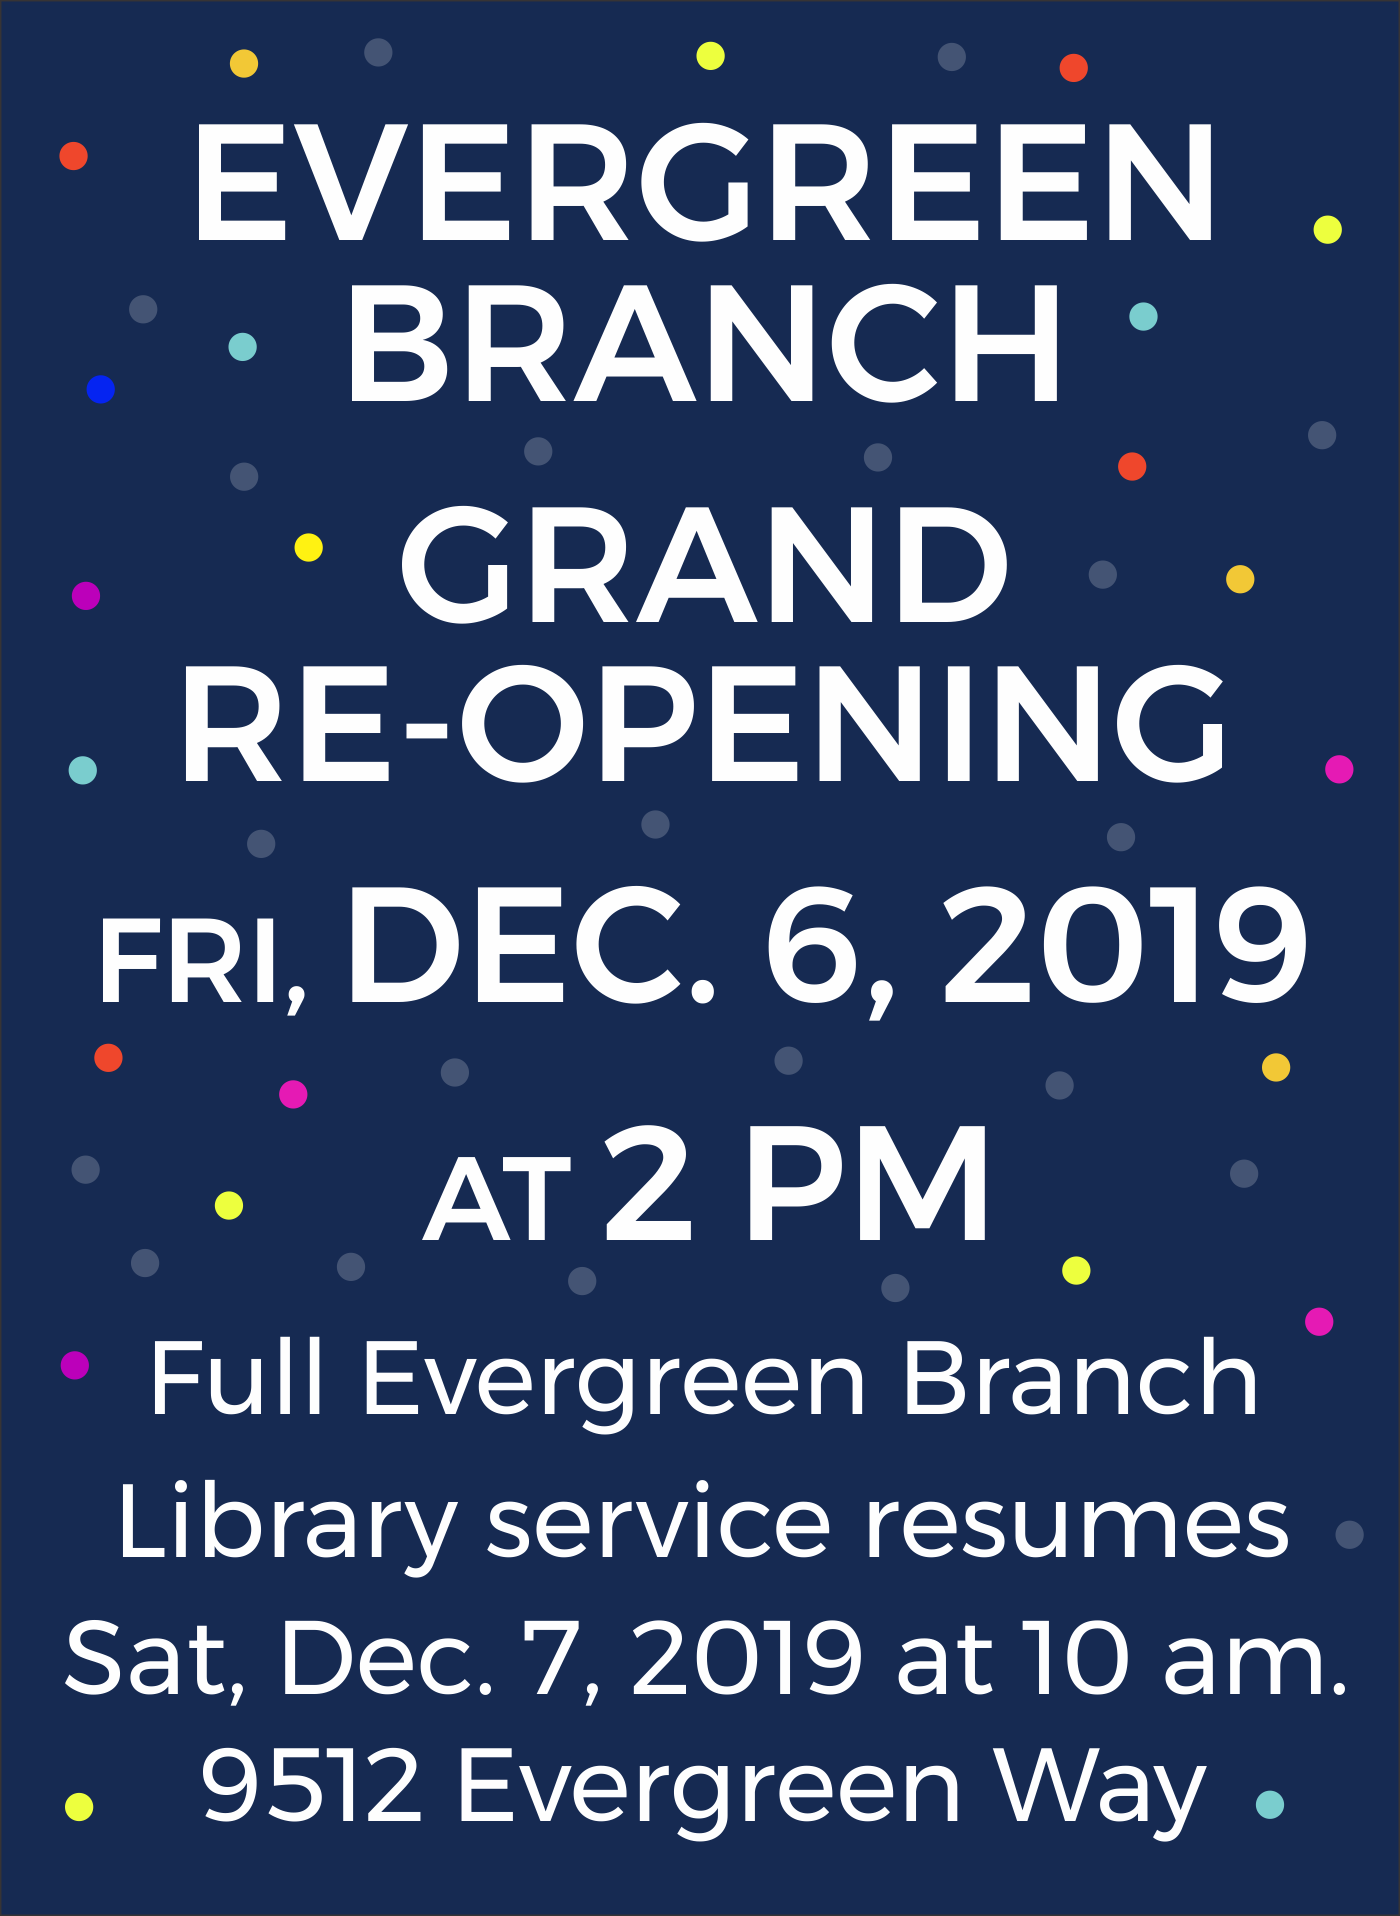 Evergreen Branch will open on Fri, Dec. 6, 2019 at 2PM and will resume normal hours on Sat, Dec. 7th at 10AM.